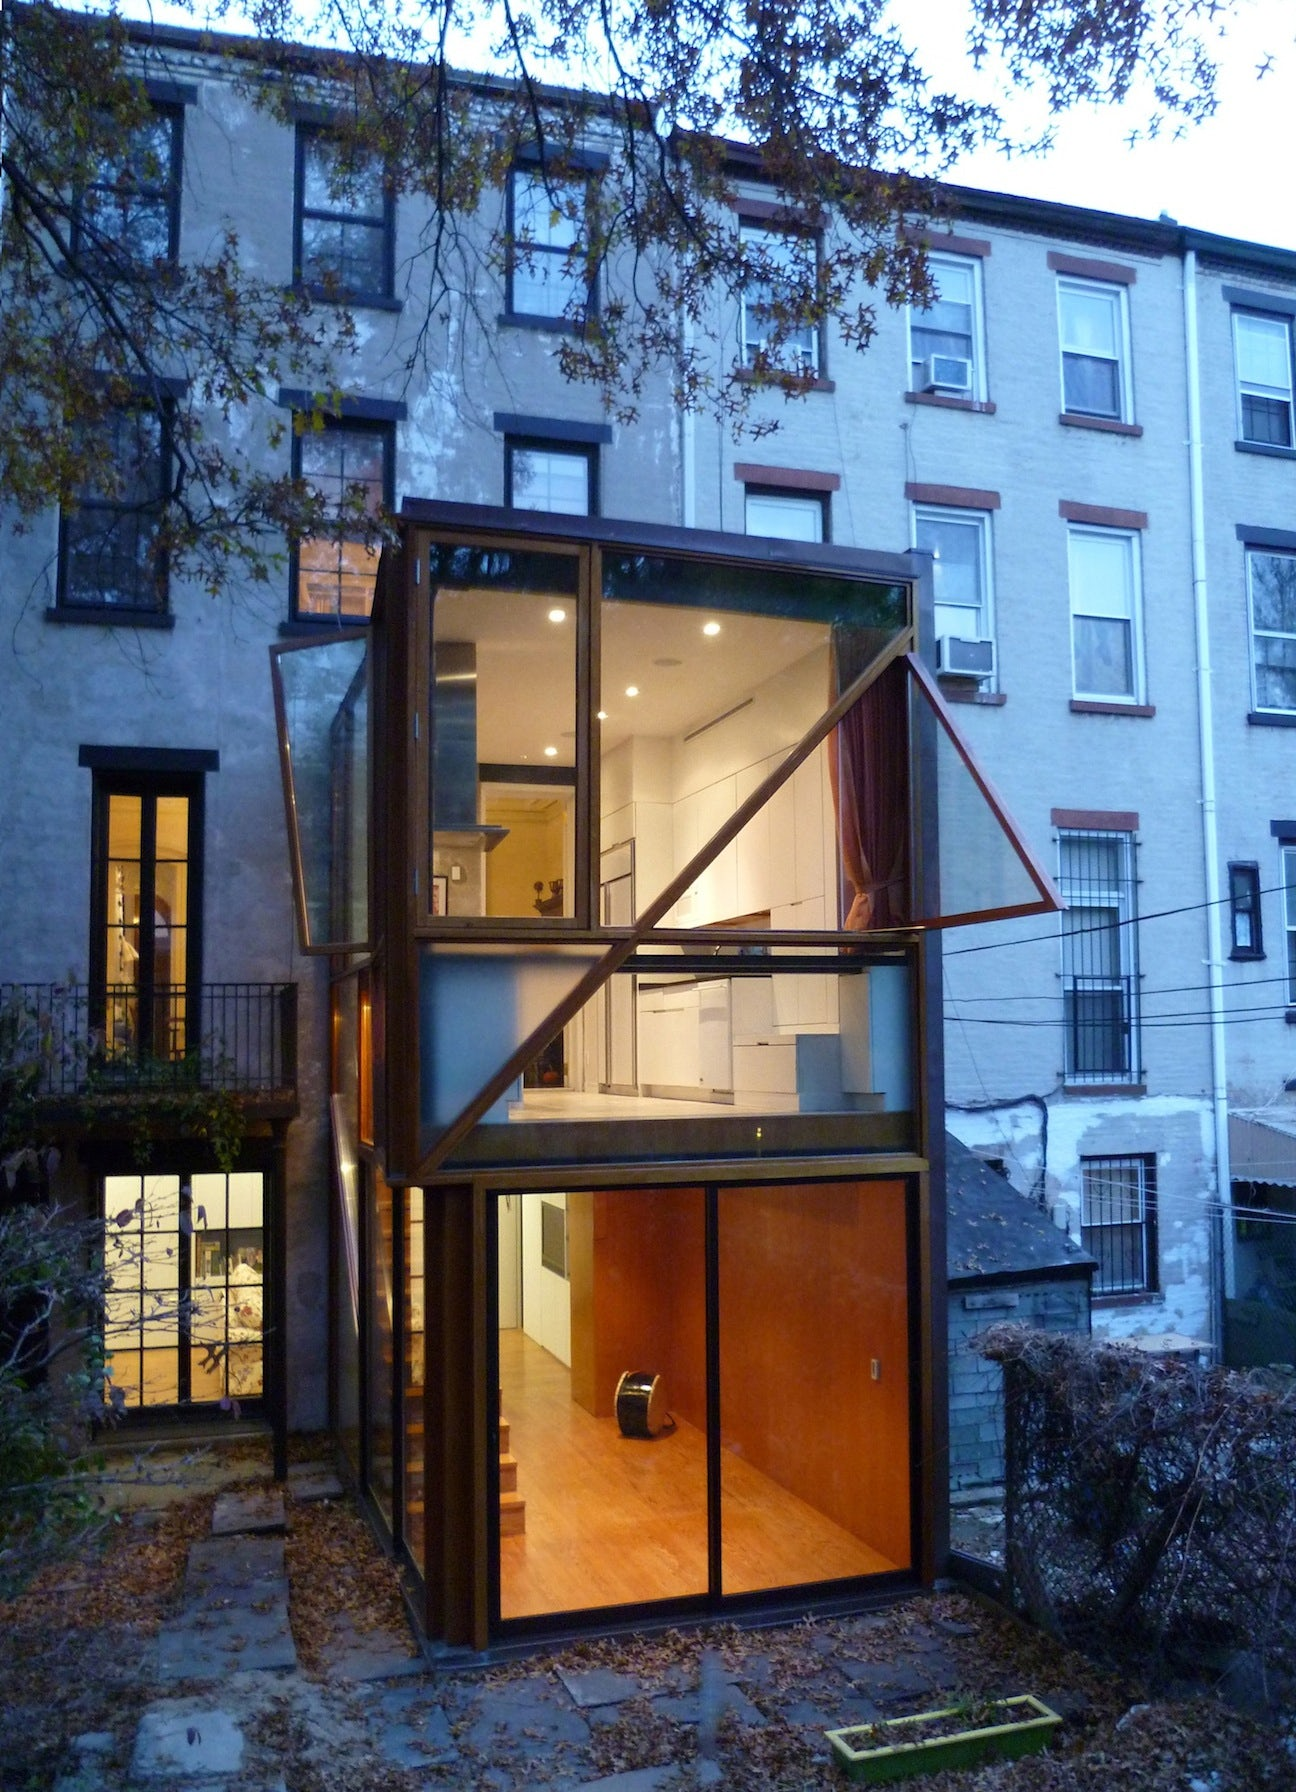 fort greene projects My family, having very few advantages of either income or education, elected to stay firmly where it had started out – brooklyn, the fort greene projects to be exact this was the apartment my grateful parents found as my father came out of the army and there we stayed until his income rose to over the city's permissible level.